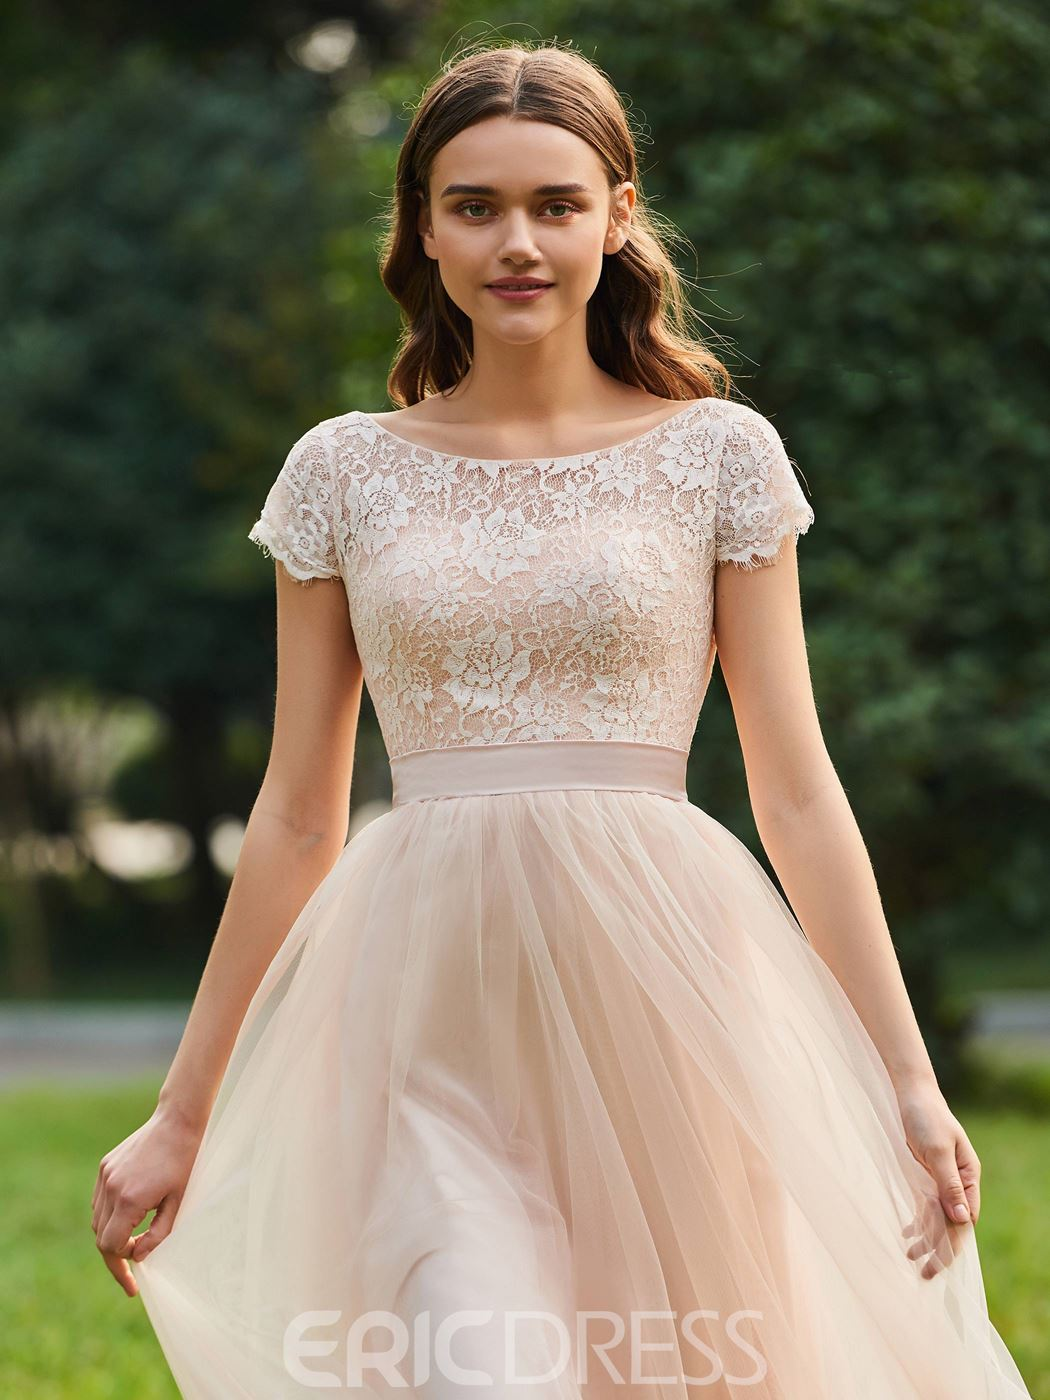 Ericdress Short Sleeves A Line Lace Bridesmaid Dress